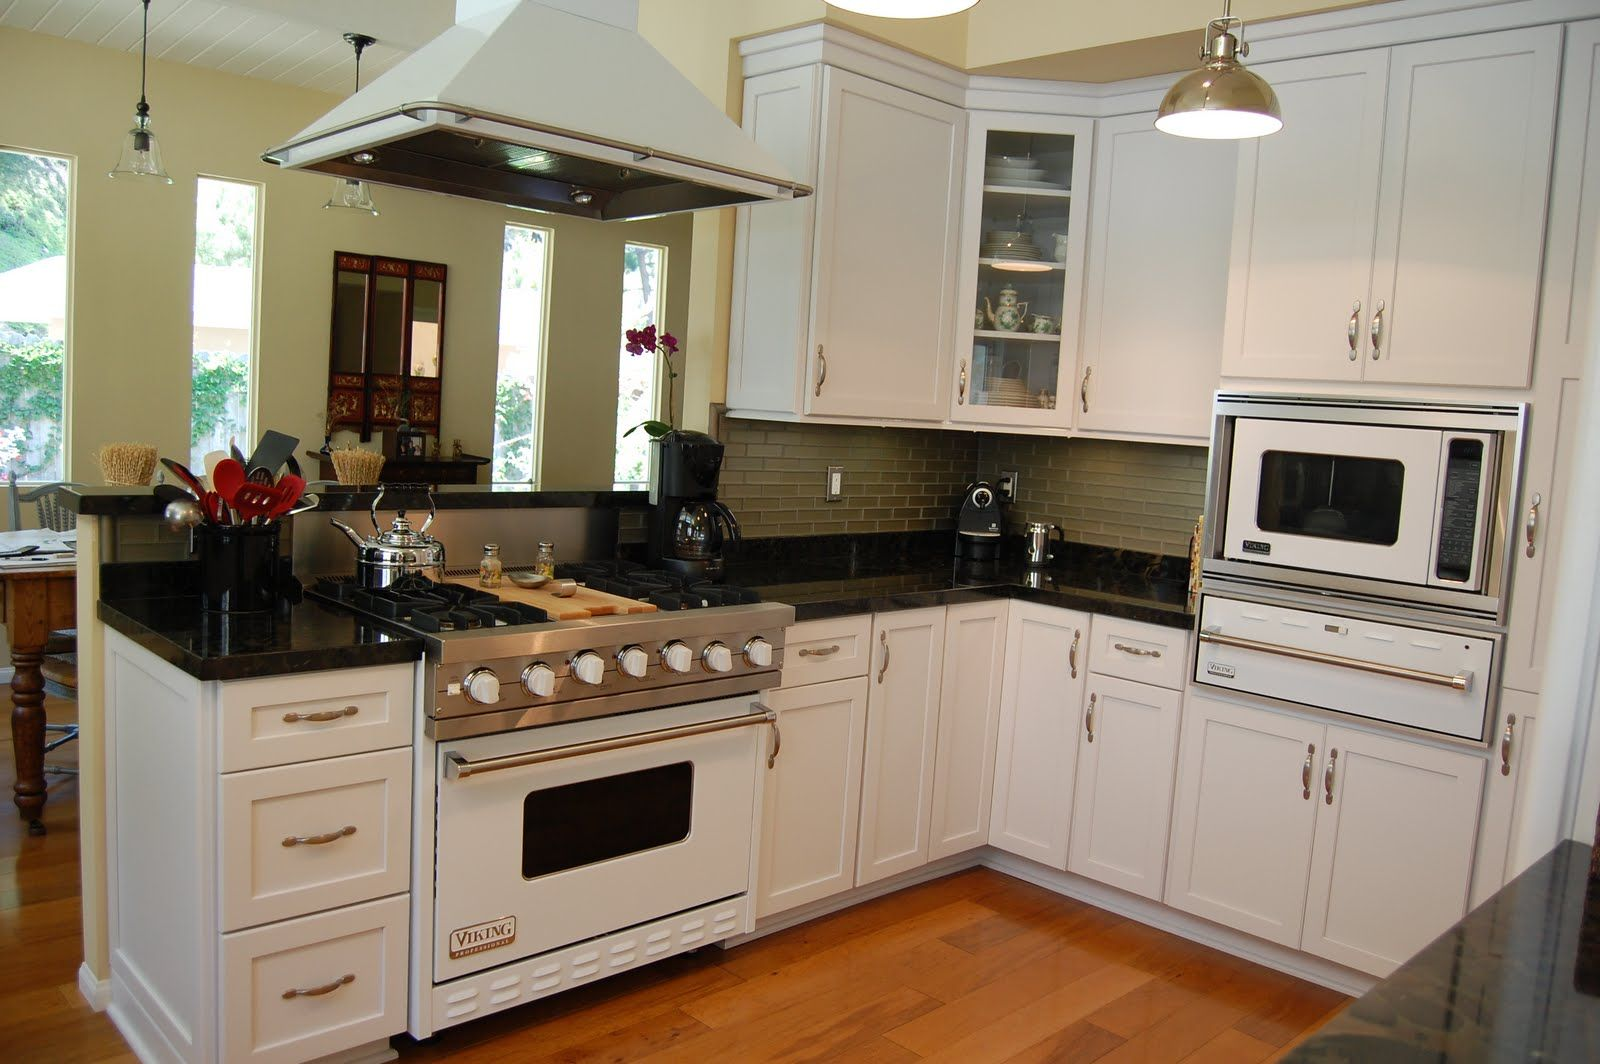 Remodeling the ranch style home counter space awkward for Open style kitchen cabinets